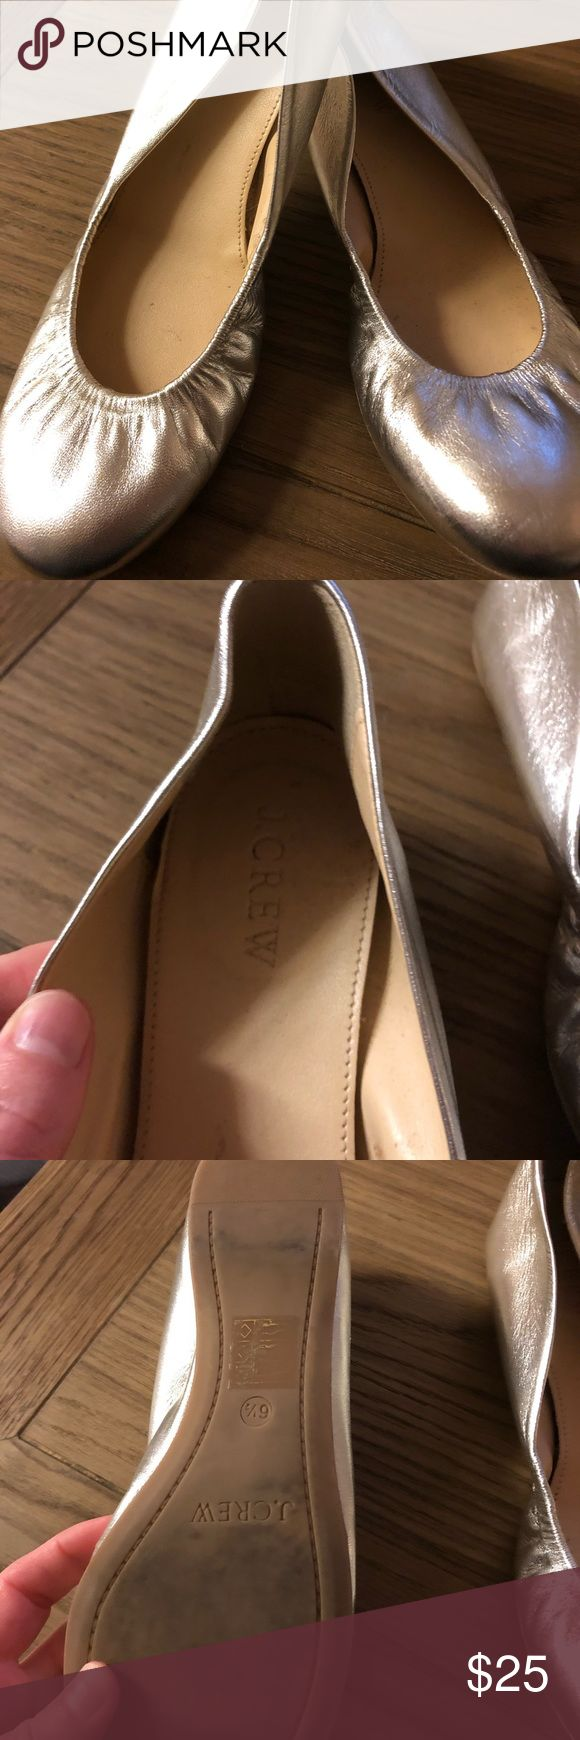 J. Crew silver ballet slippers These perfect ballet slippers are in excellent condition. So comfy and a good addition to a young professionals wardrobe. Make me an offer. J. Crew Shoes Flats & Loafers